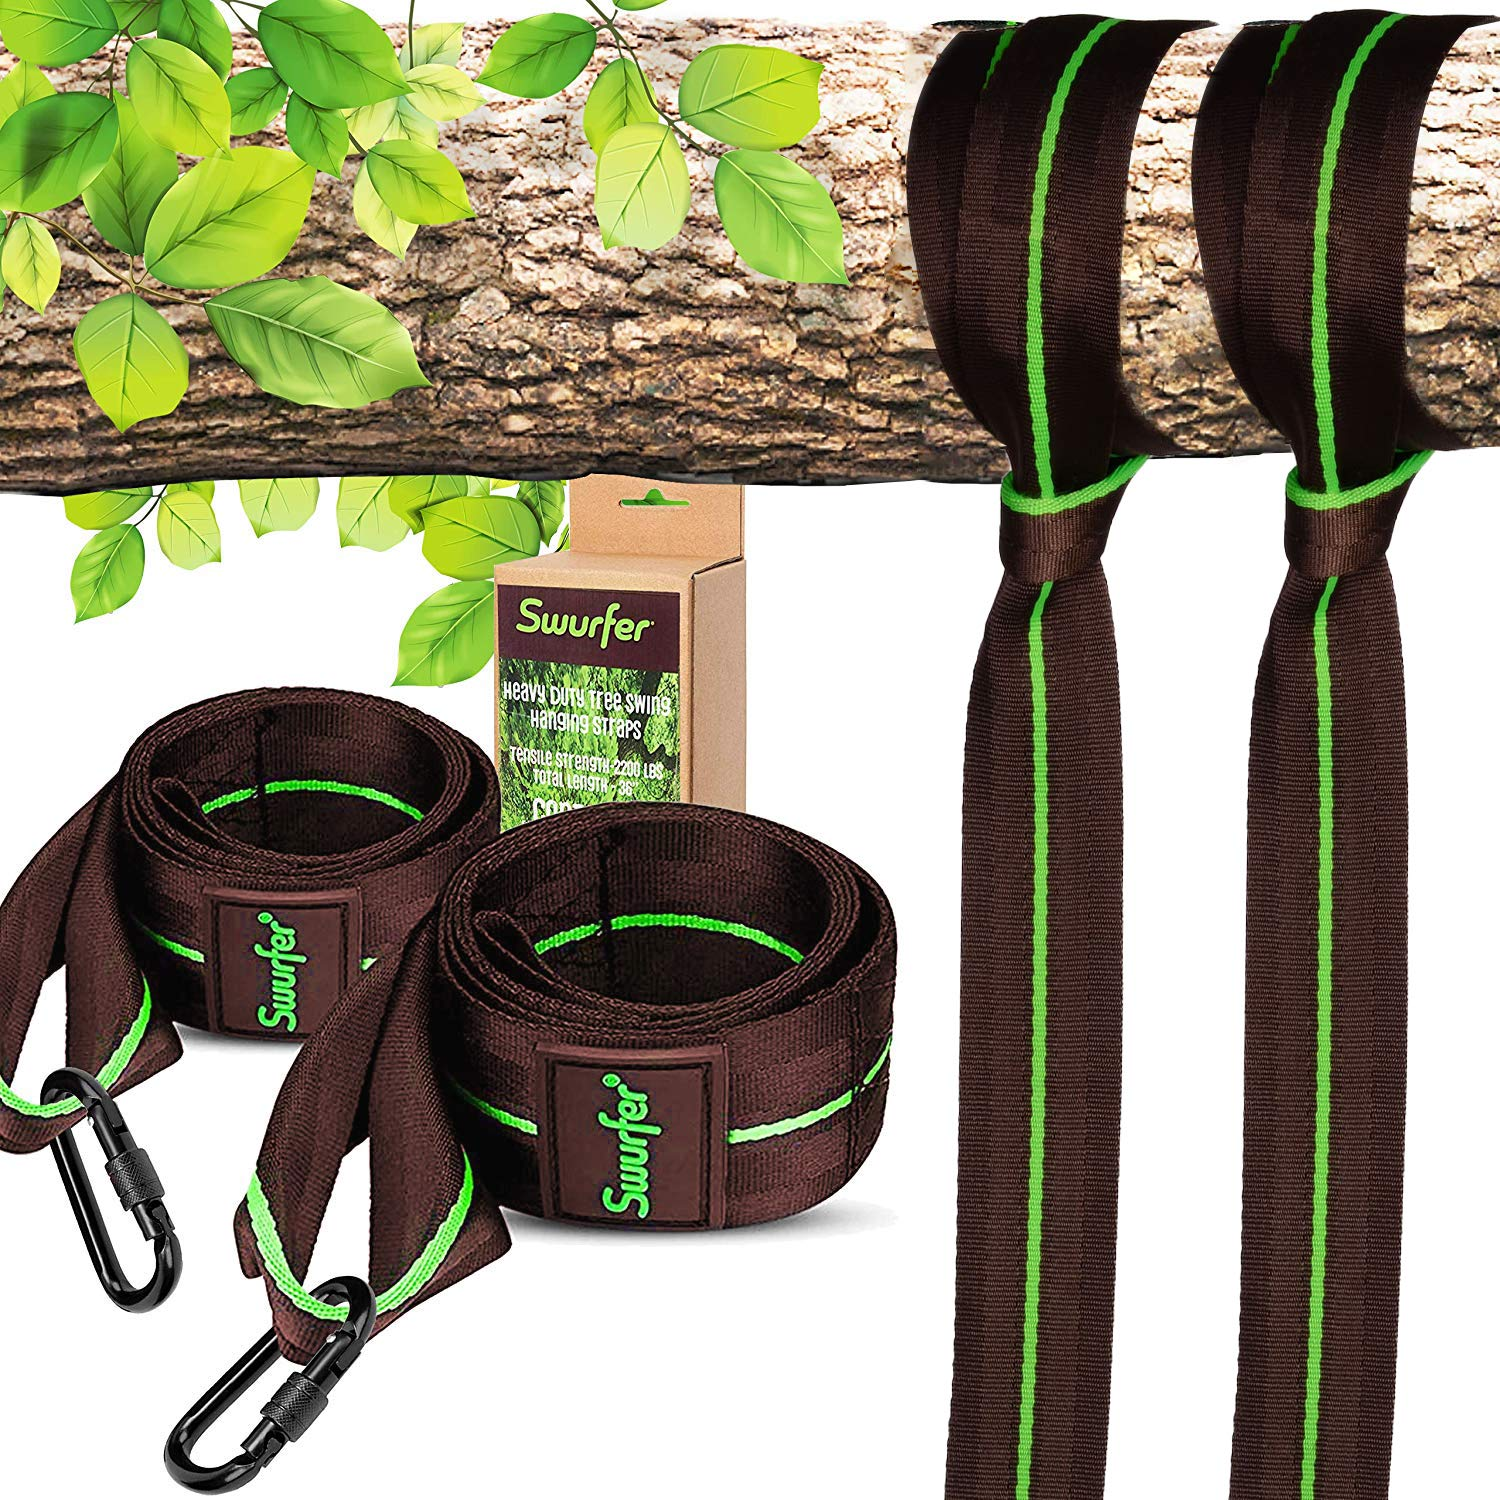 Swurfer 3ft Tree Swing Straps Hanging Kit (Set of 2) Durable Weatherproof Tree Attachment Straps - Includes 2 Industrial Strength Safe Locking Carabiners, Holds 6000 Lbs - Hang Any Swing or Hammock by Swurfer